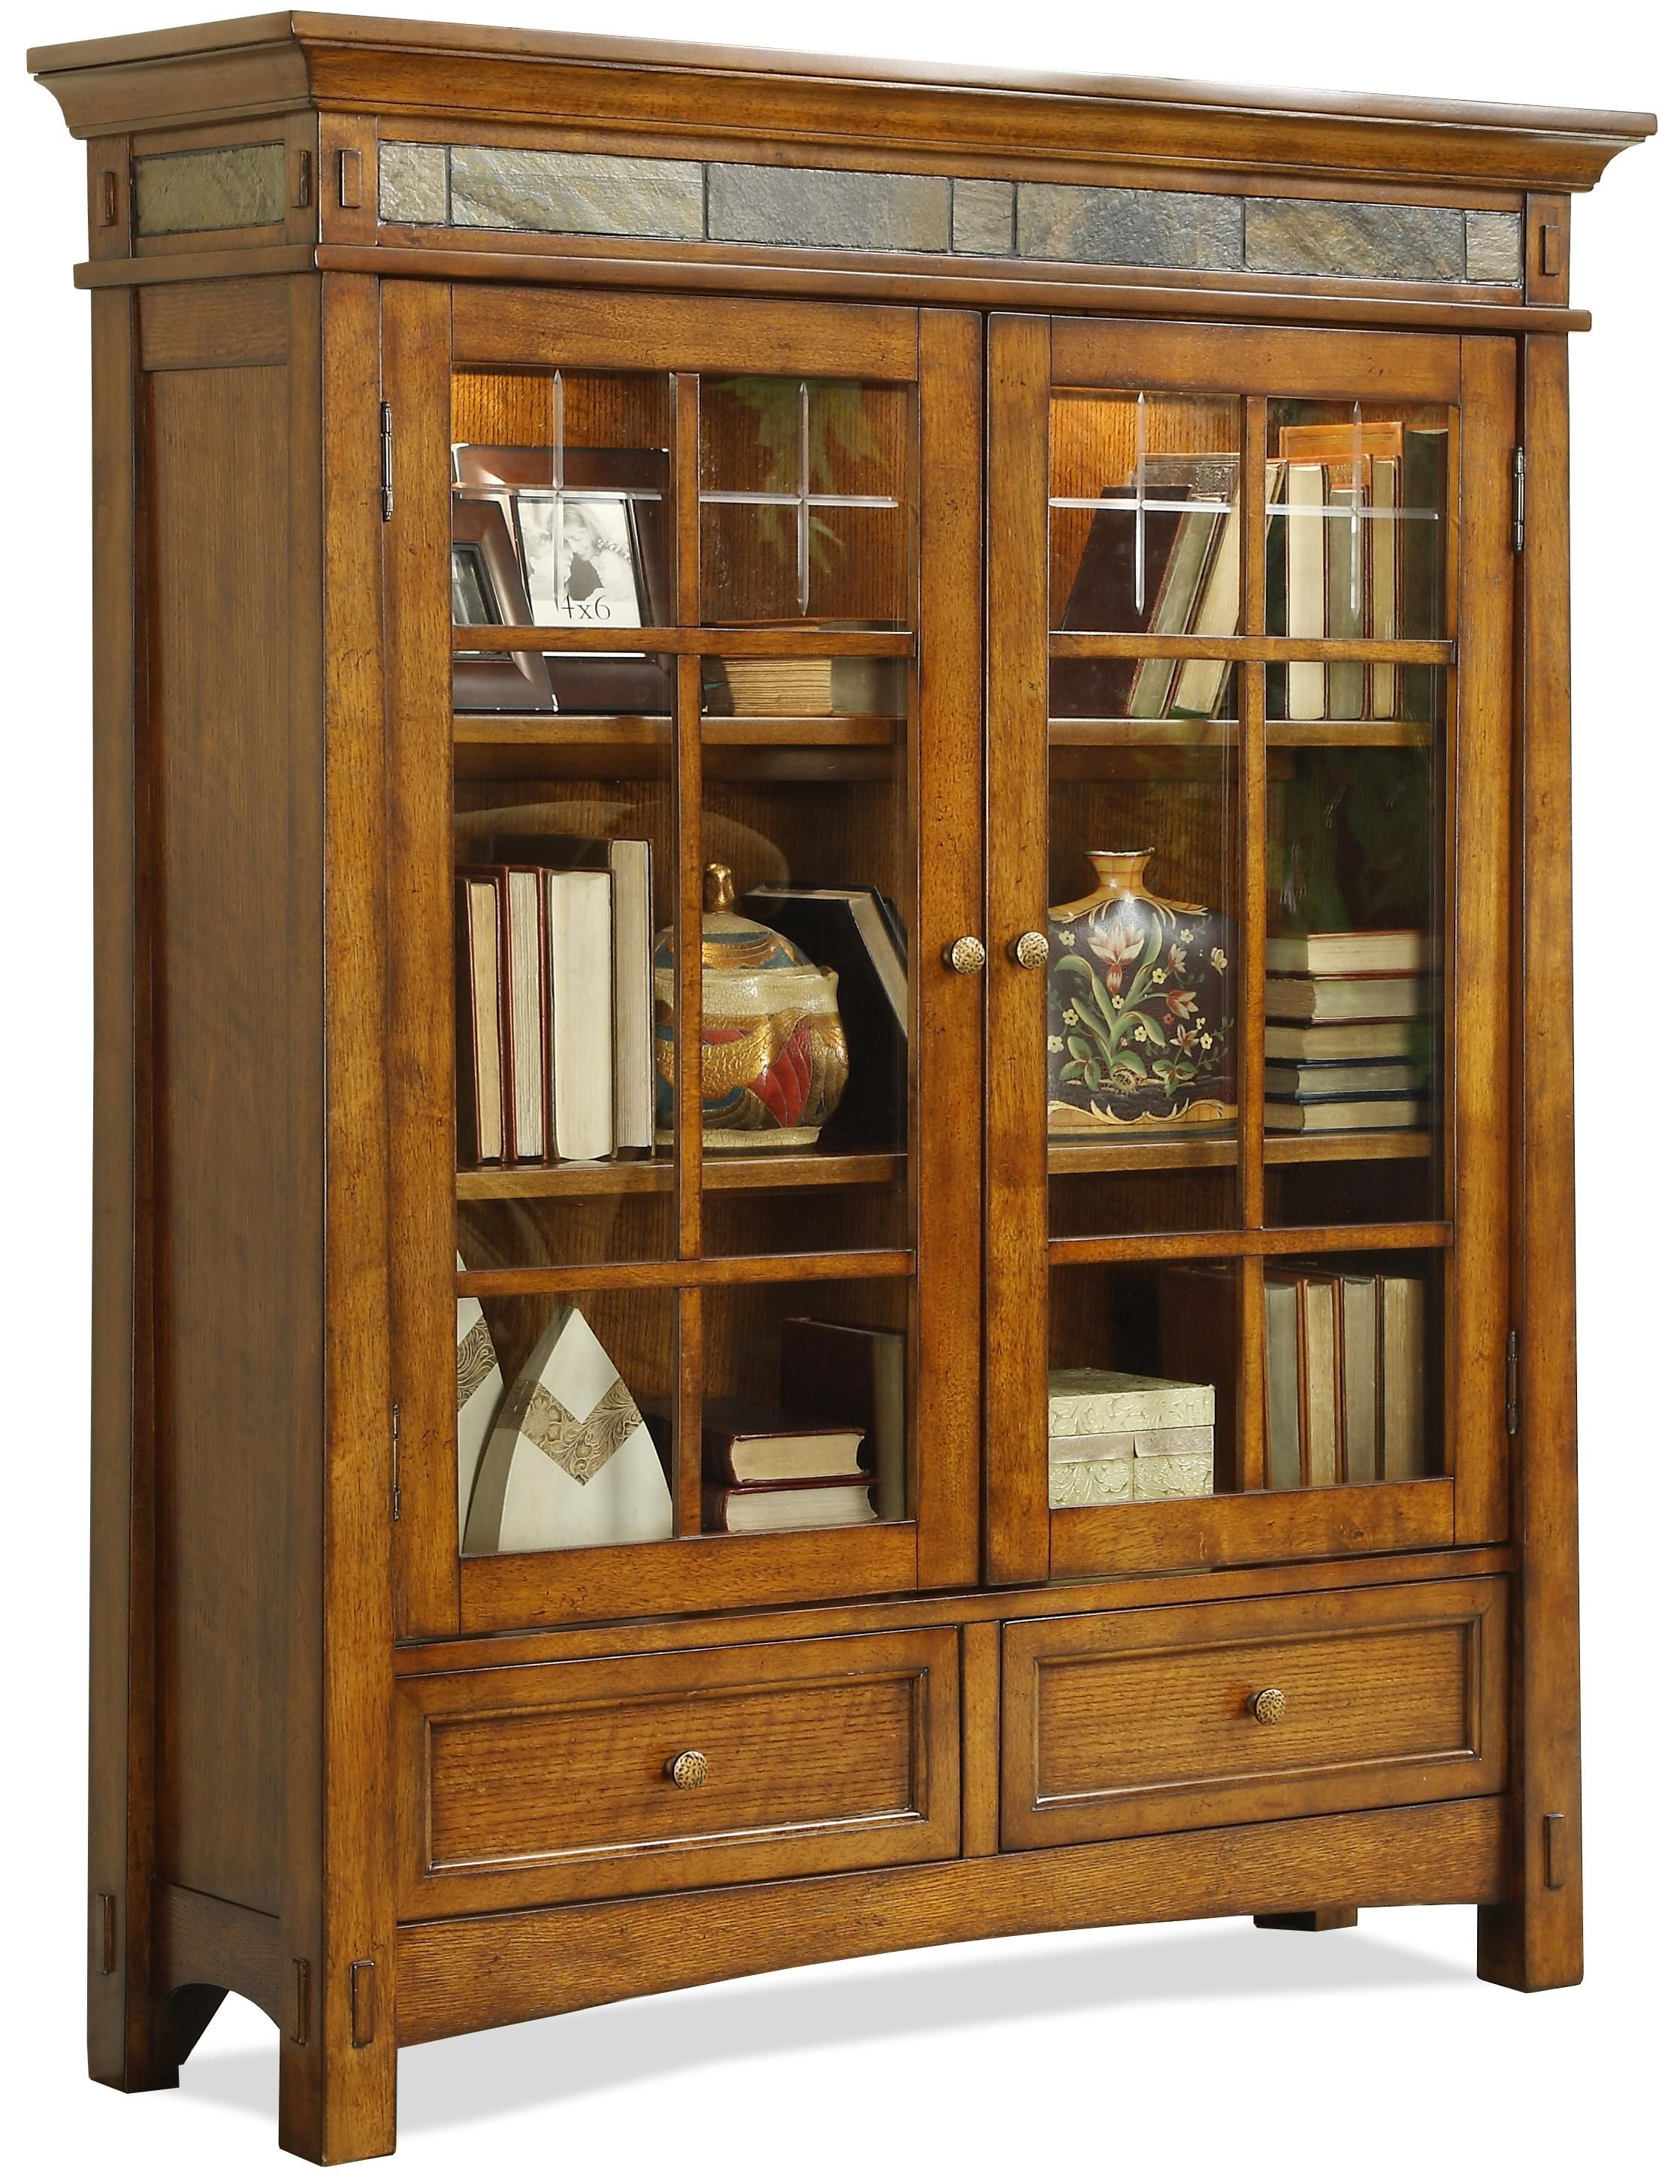 Craftsman Home Door Bookcase By Riverside Furniture Livingfamily